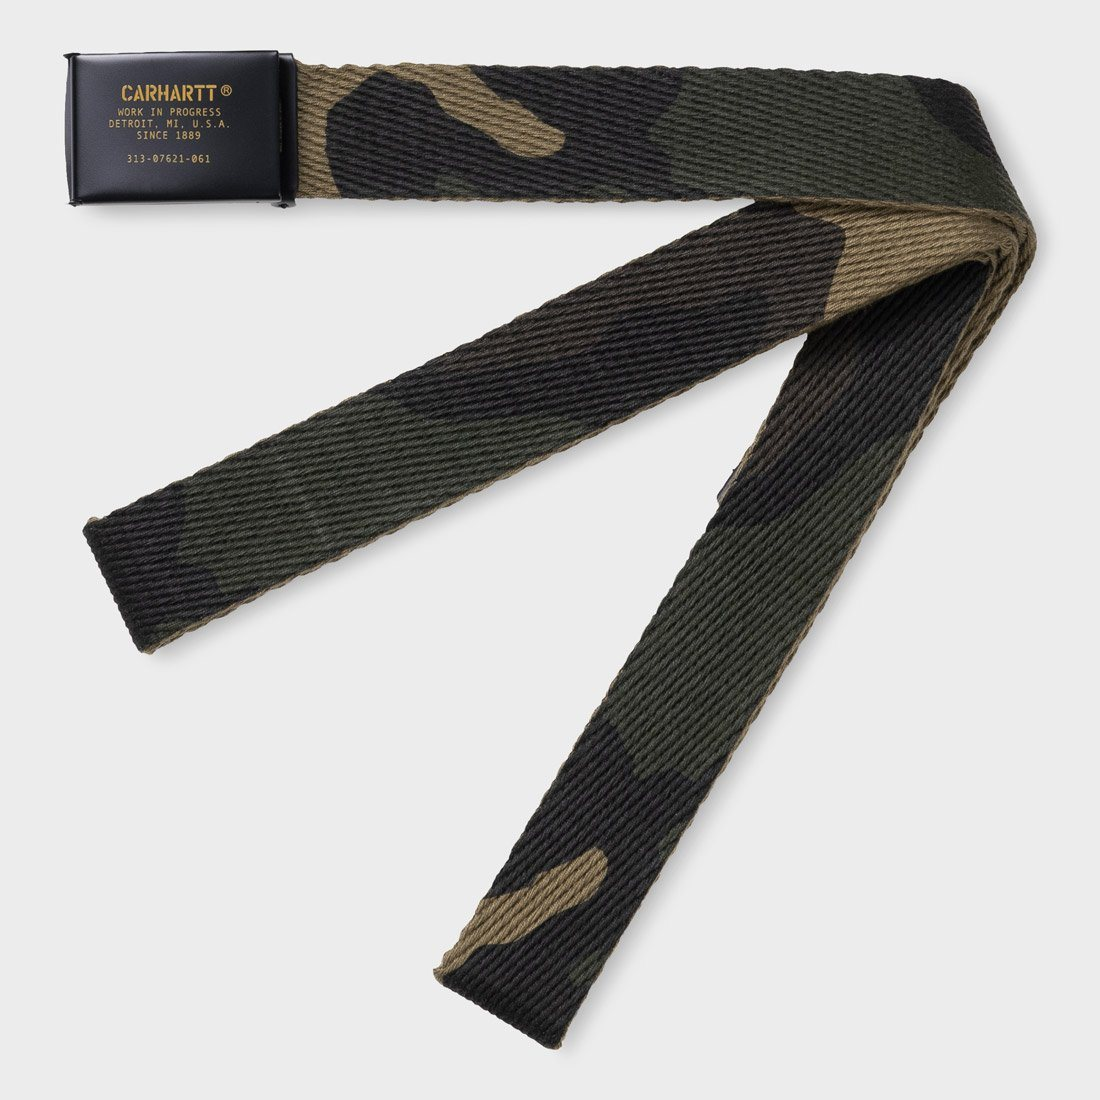 Carhartt WIP Military Printed Belt Camo Laurel